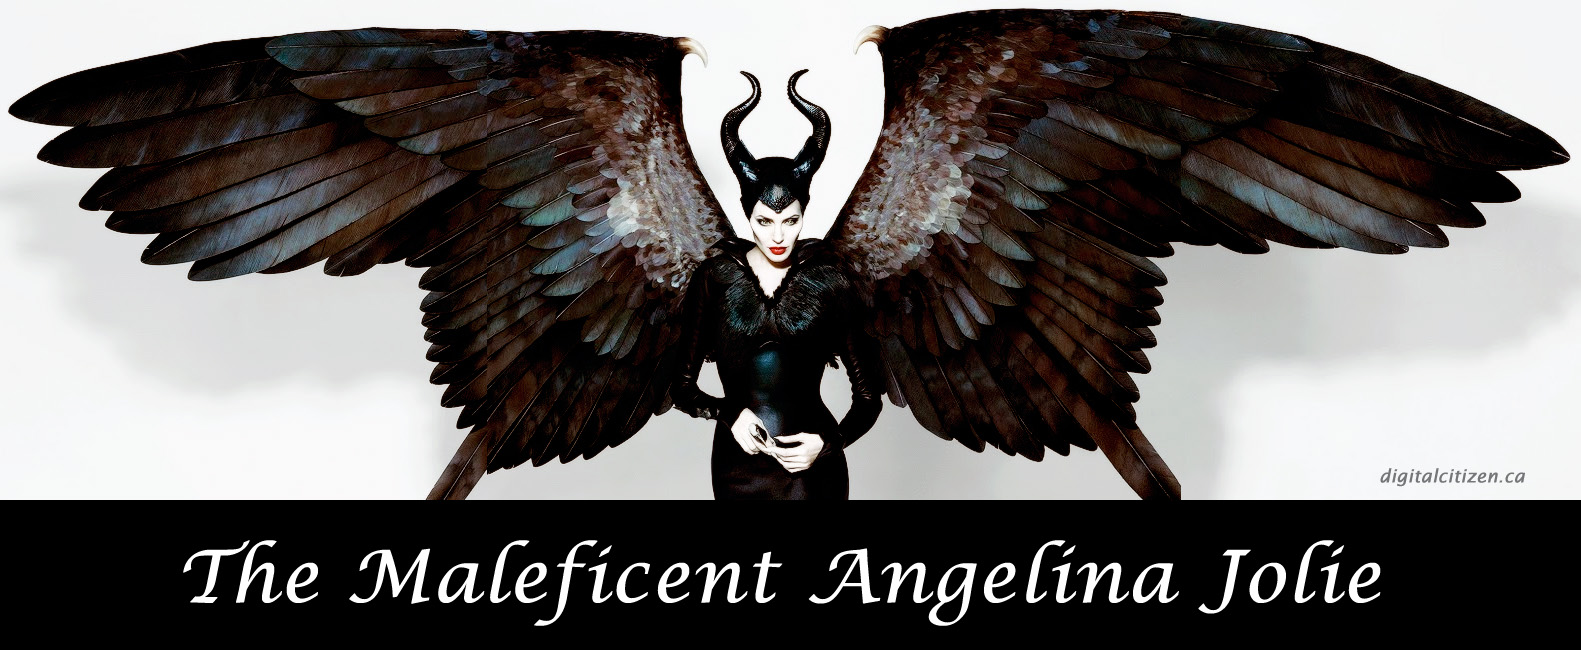 A First Look At Angelina Jolie As Maleficent Digital Citizen